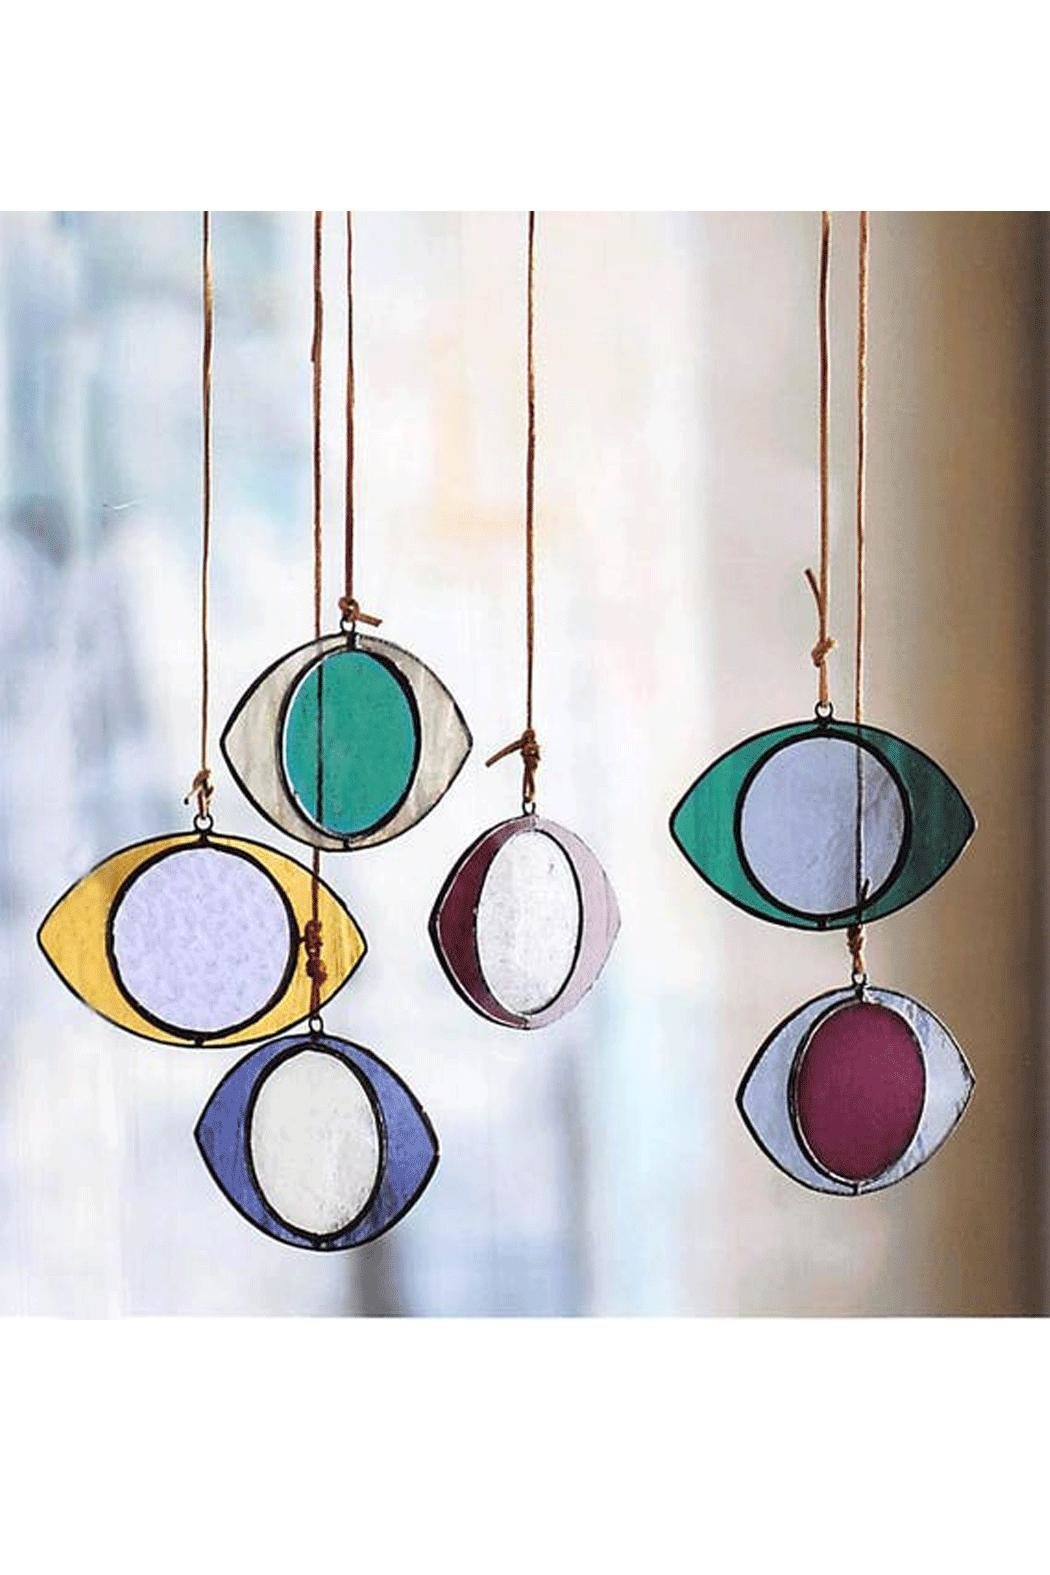 Roost Eye Stained-Glass Ornaments - Main Image